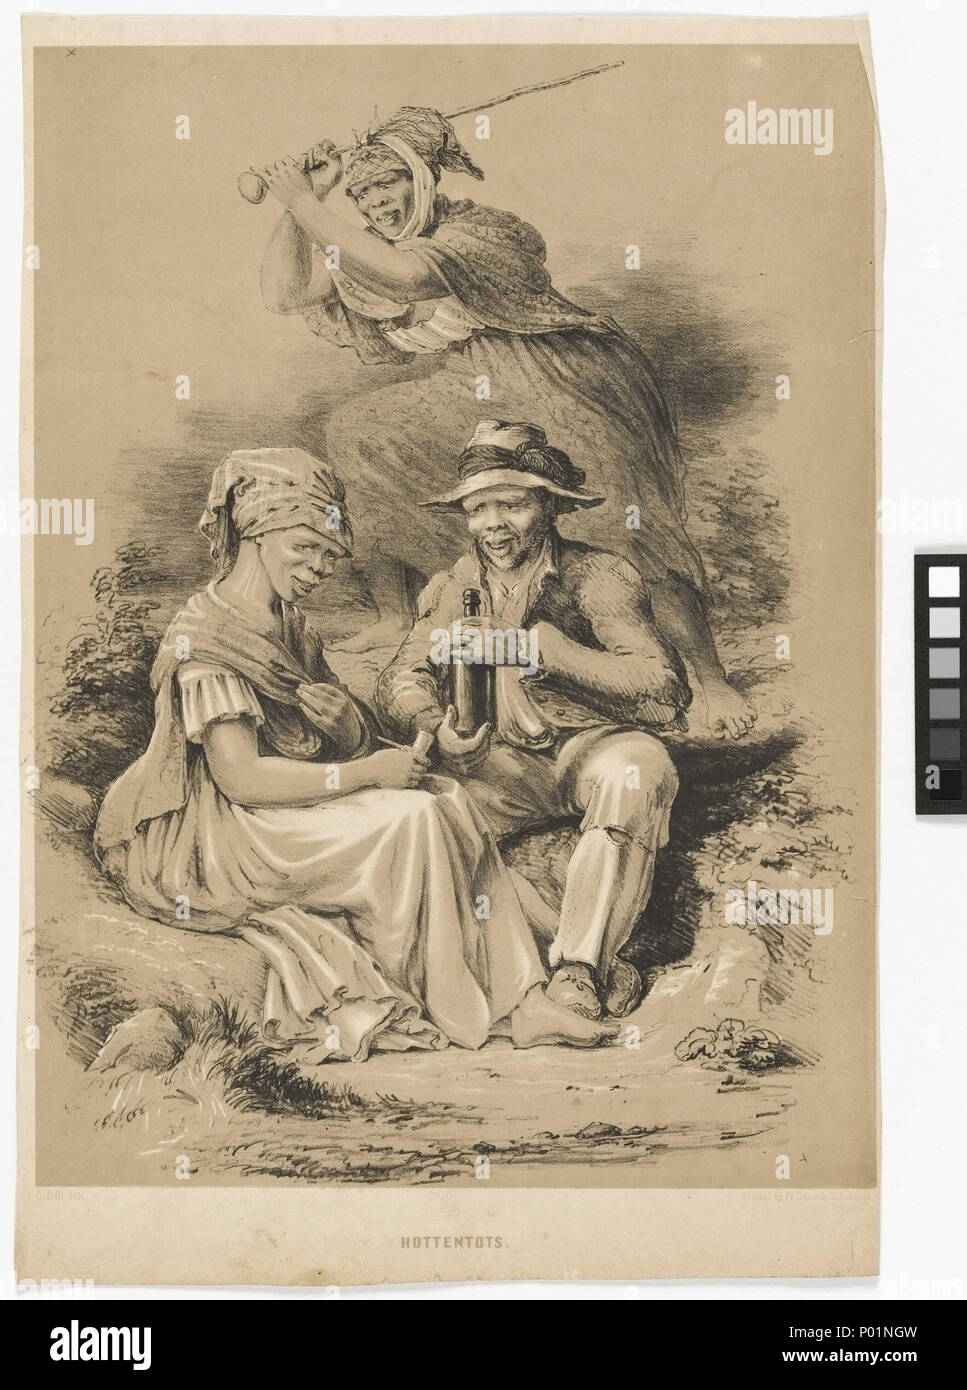 .  English: 'Hottentots' Print depicting a group of 'Hottentots' or Khoikhoi by Charles Davidson Bell. It ilustrated Bell's fears regarding the potential dangers of unguided western imperialism. The man is drinking, the woman has cigarettes, while the woman behind brandishes a blunt instrument. All are dressed in Western clothes. Charles Davidson Bell sketched a number of ethnographic studies of the different non-European South Africans he found while living there, some not long after he arrived in 1830, others while on an expedition into the Interior with Dr Andrew Smith in 1834 and more stil - Stock Image